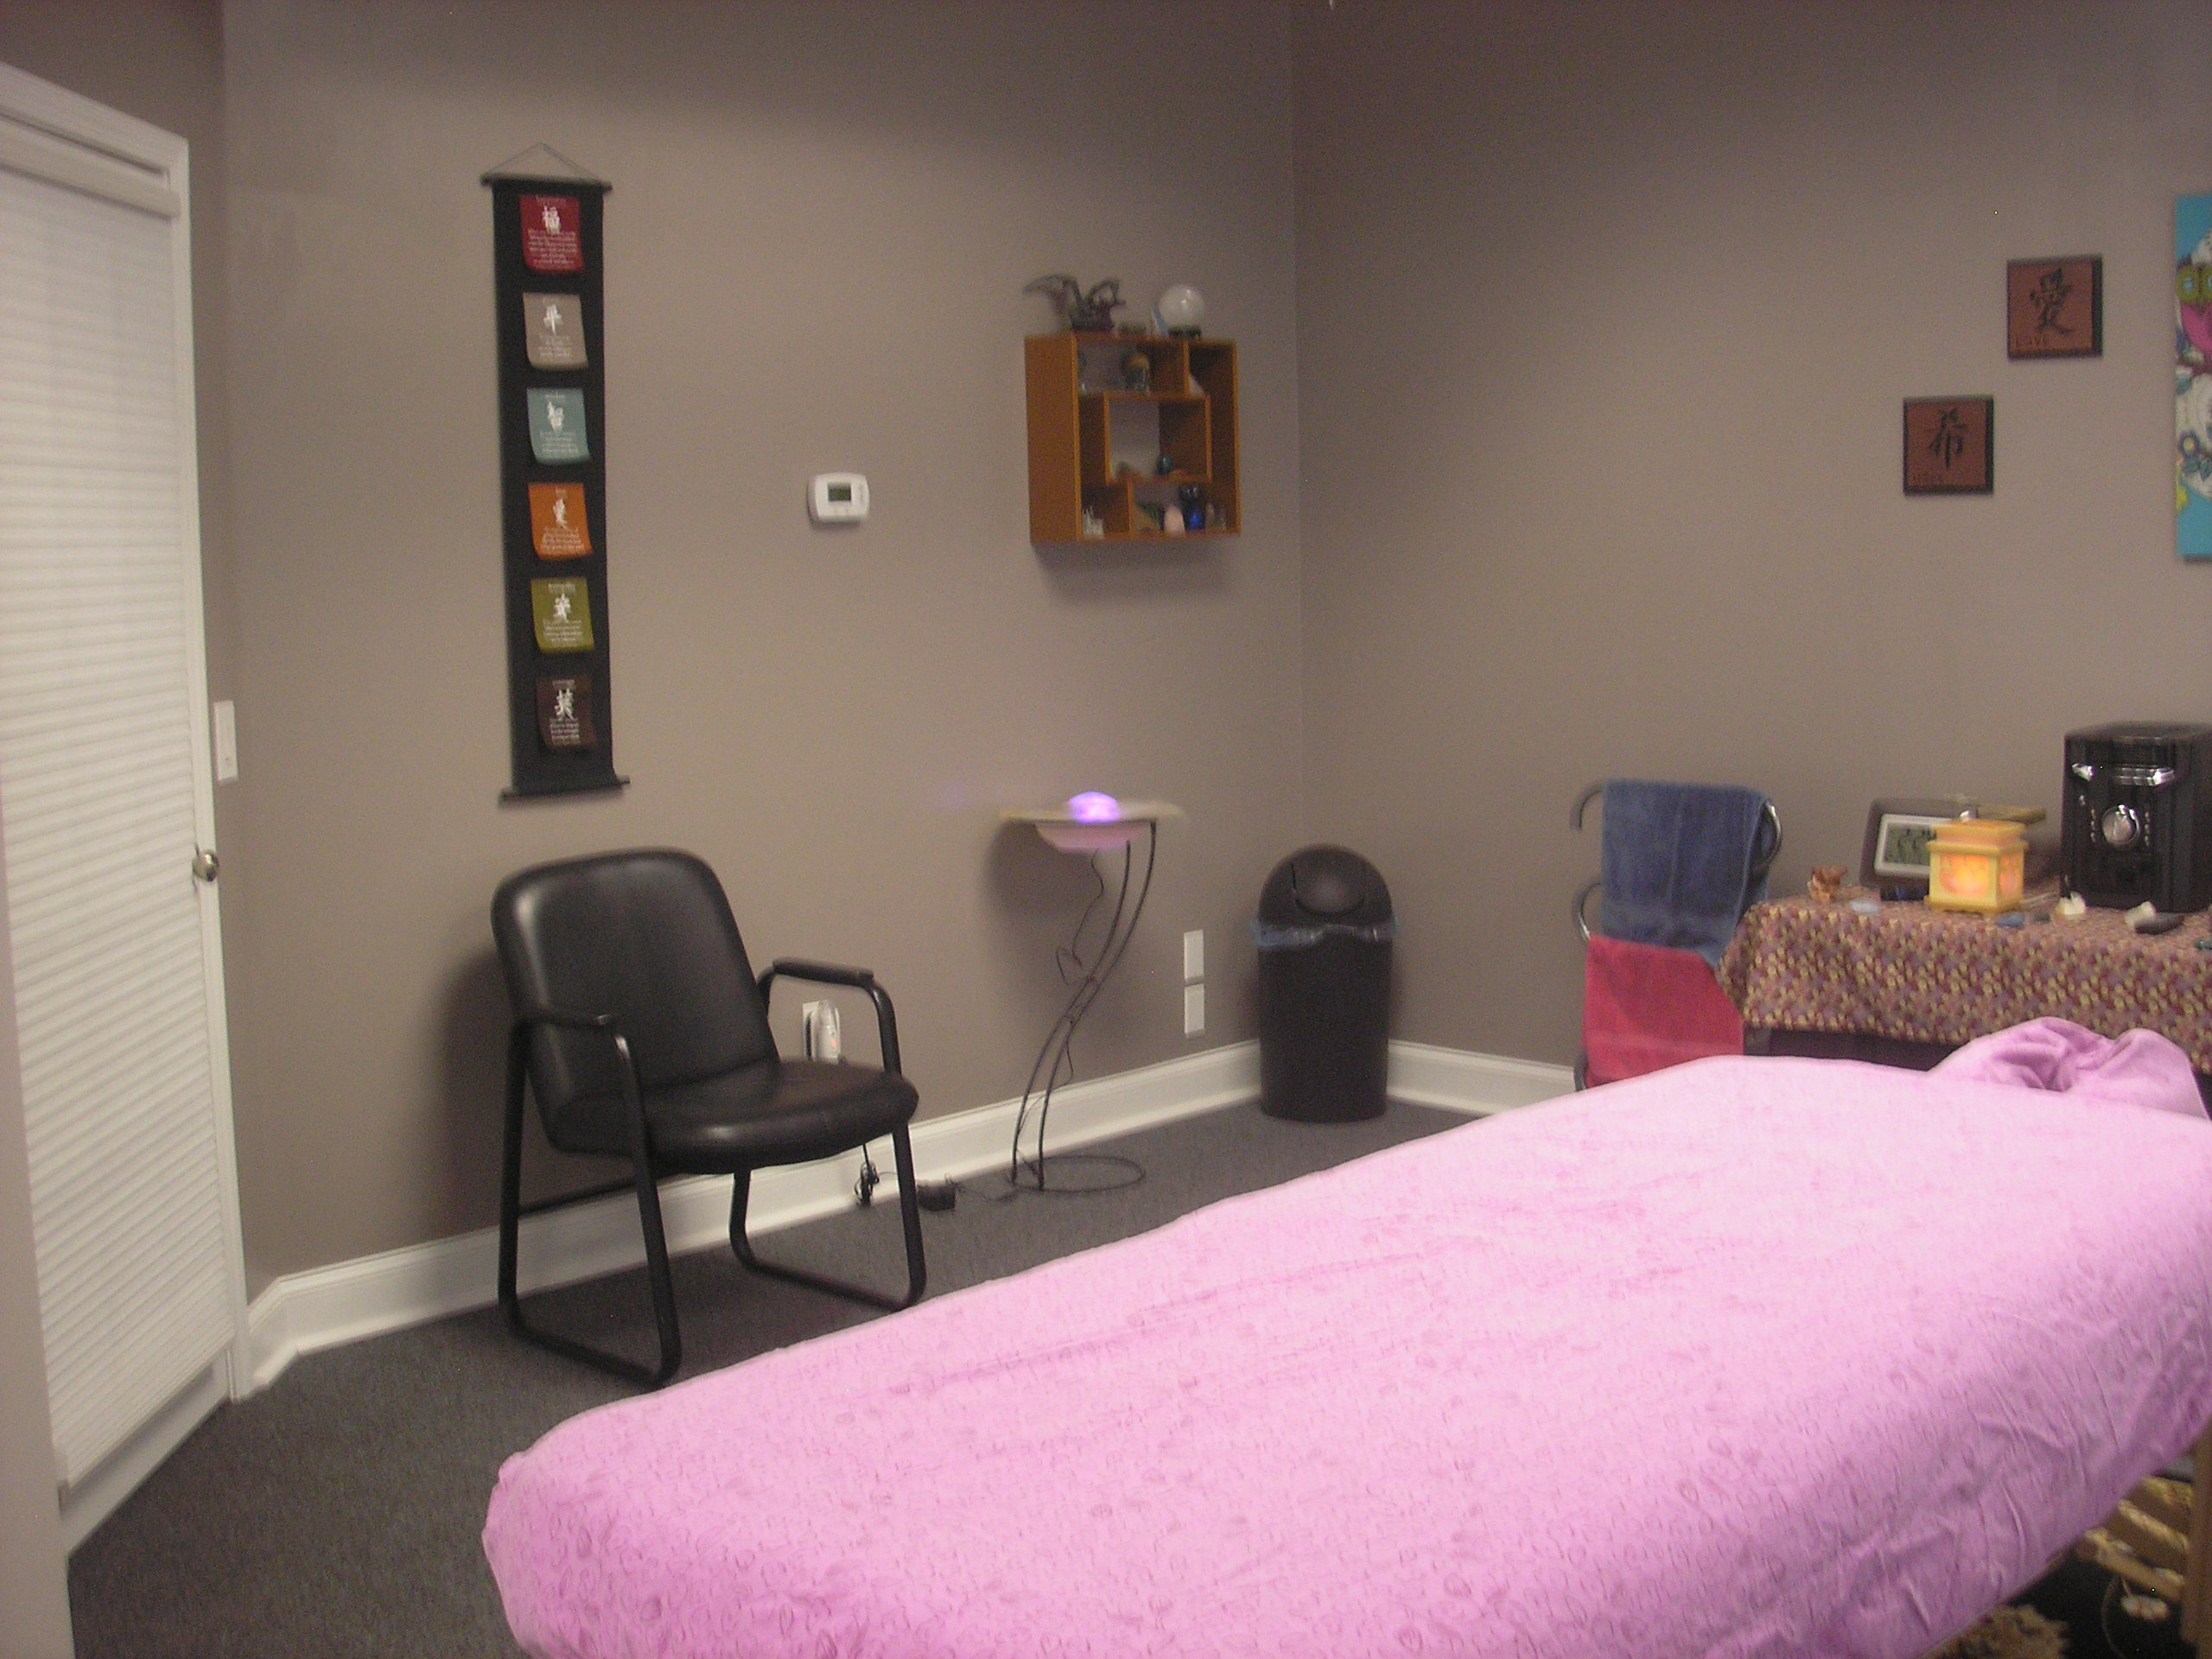 Caring palms massage and reiki in jacksonville beach fl for Jewelry making classes salt lake city